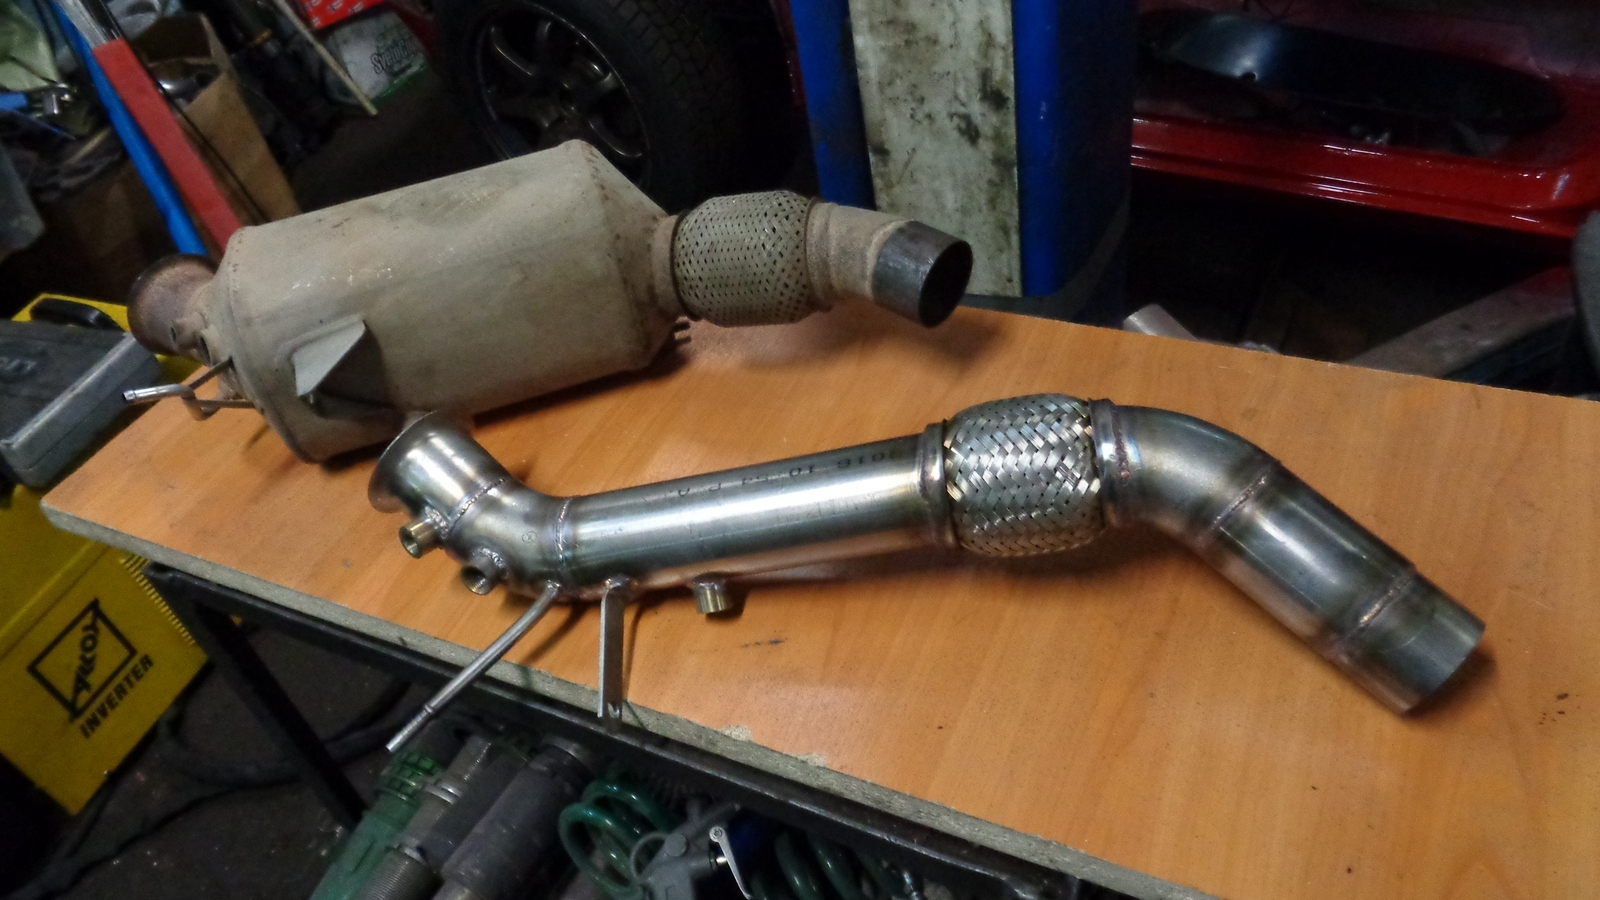 bmw_x3f25_tun_downpipe1